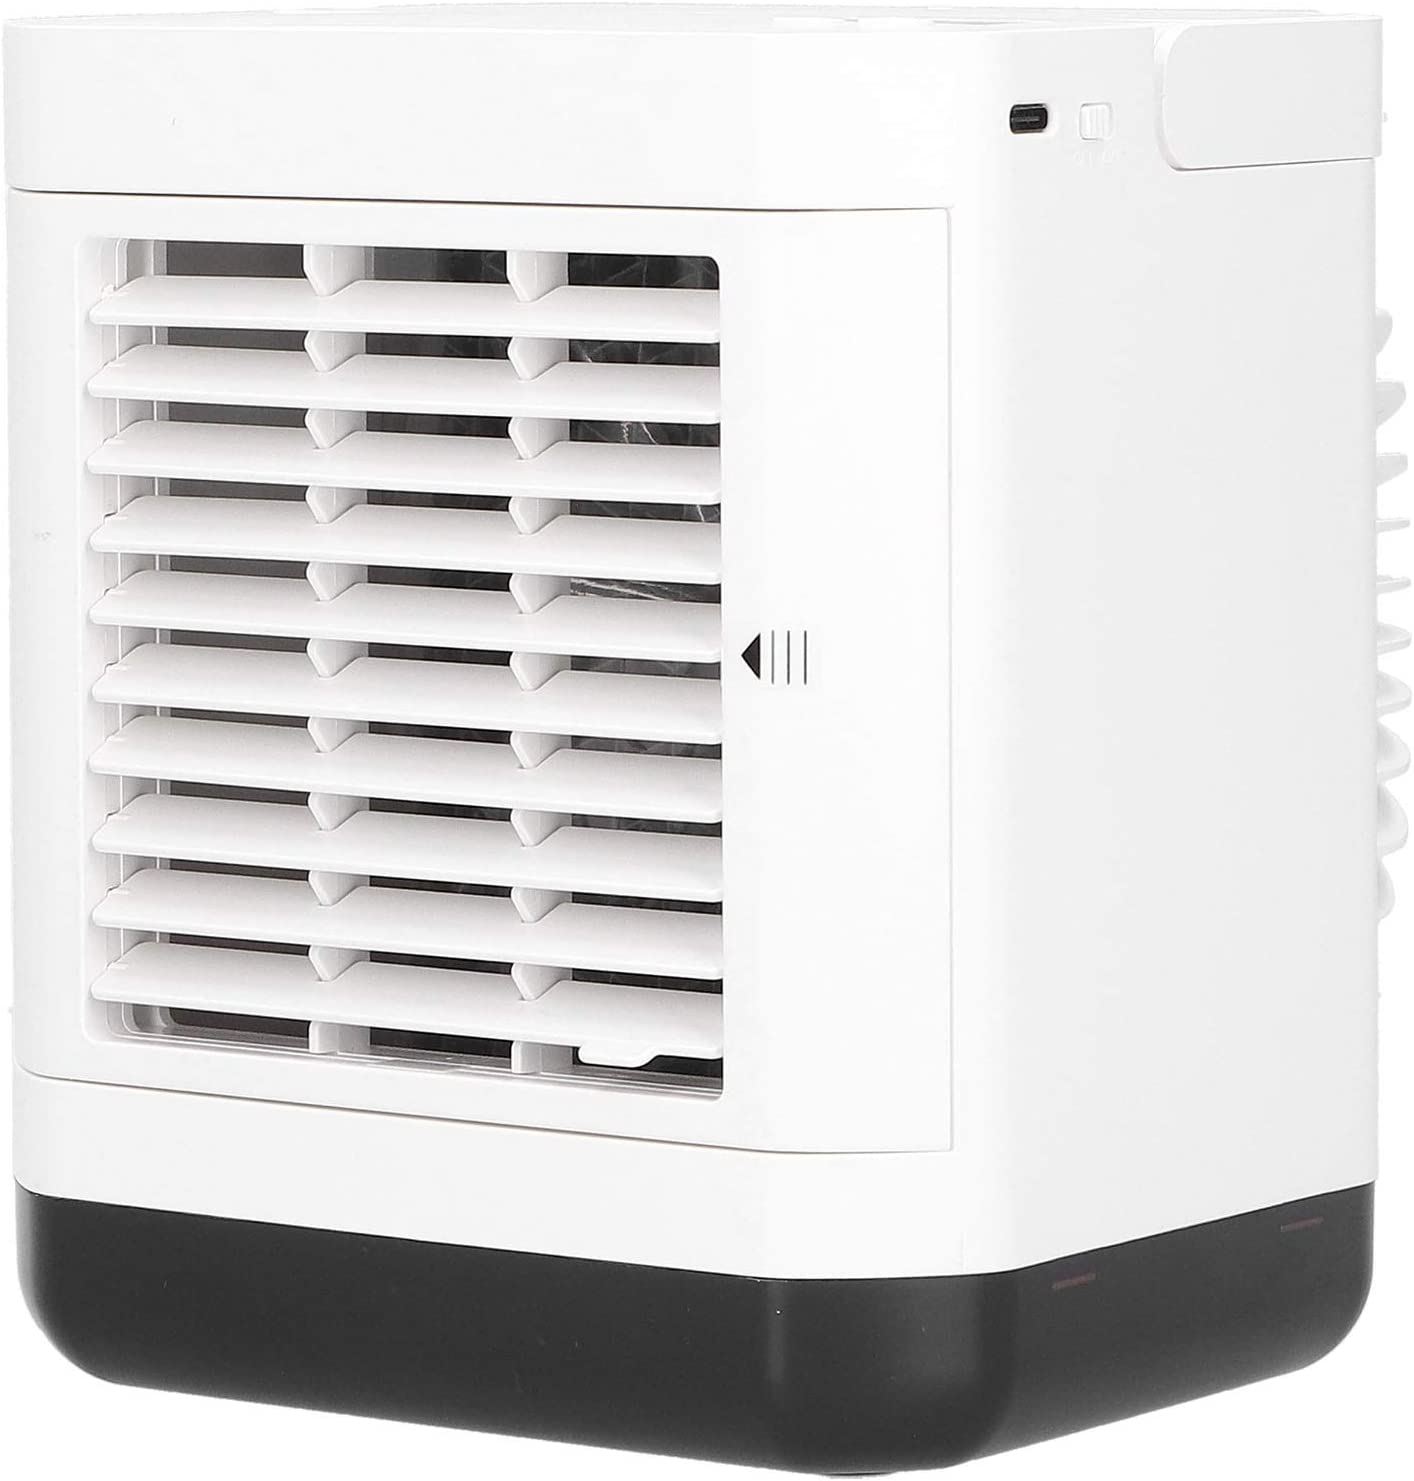 Cooling Fan Mini Desktop Portable for Summer Off New Manufacturer regenerated product product type Air Cooler